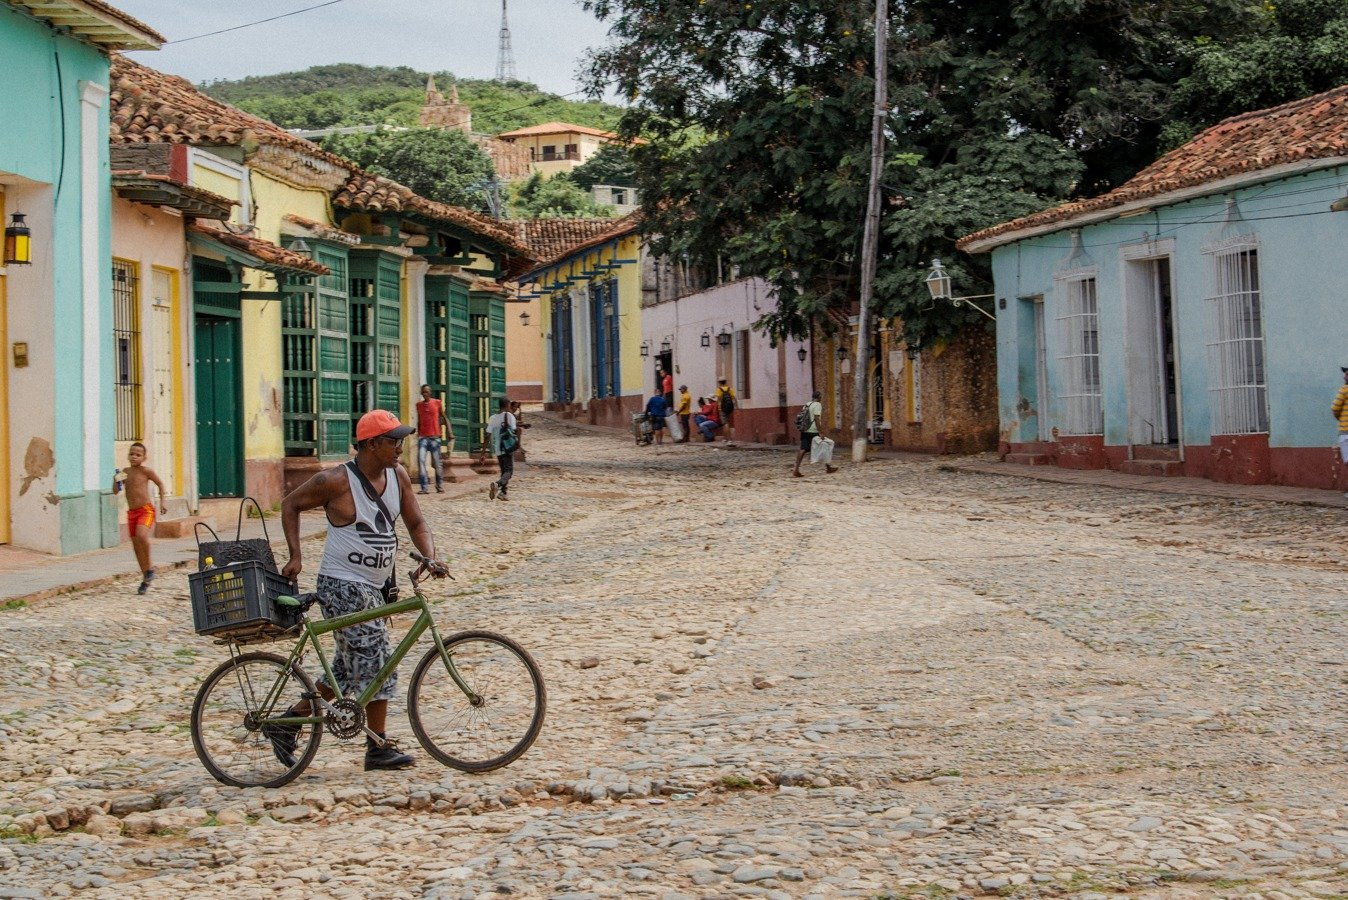 What You Need To Know Before You Go To Cuba